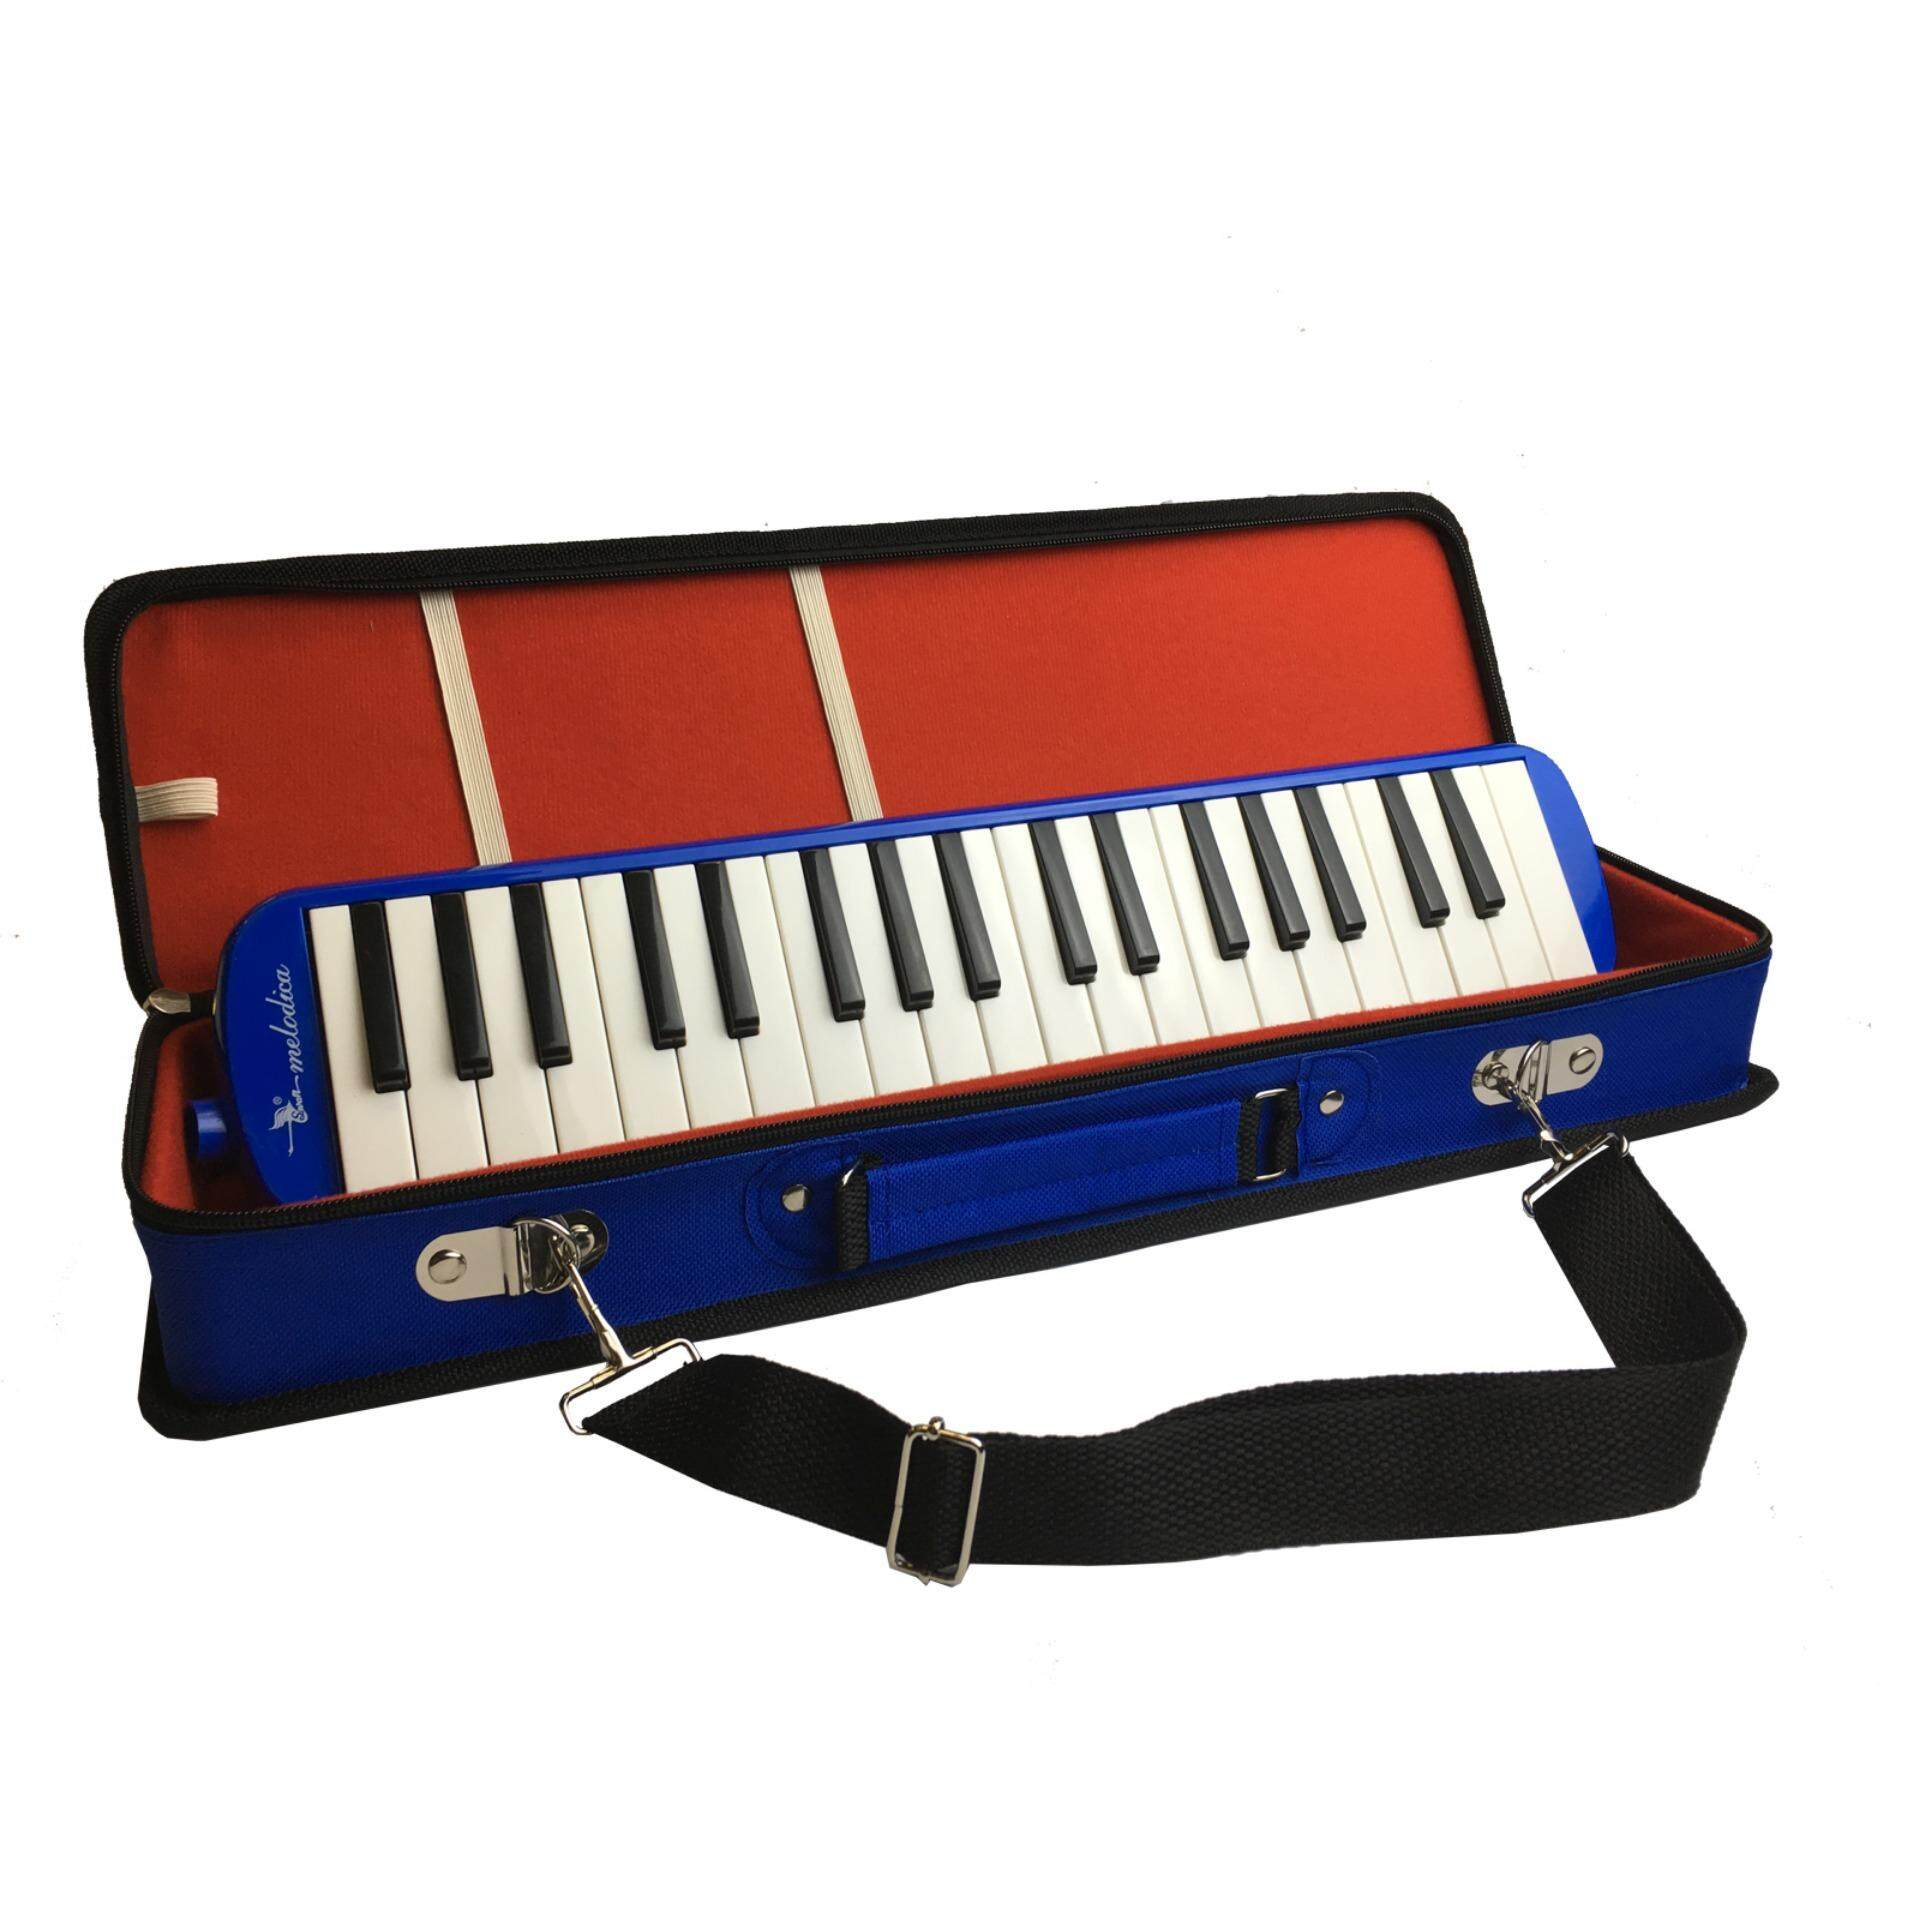 Swan 37-Key Mouth Piano Keyboard Melodica With Foam Hardcase image